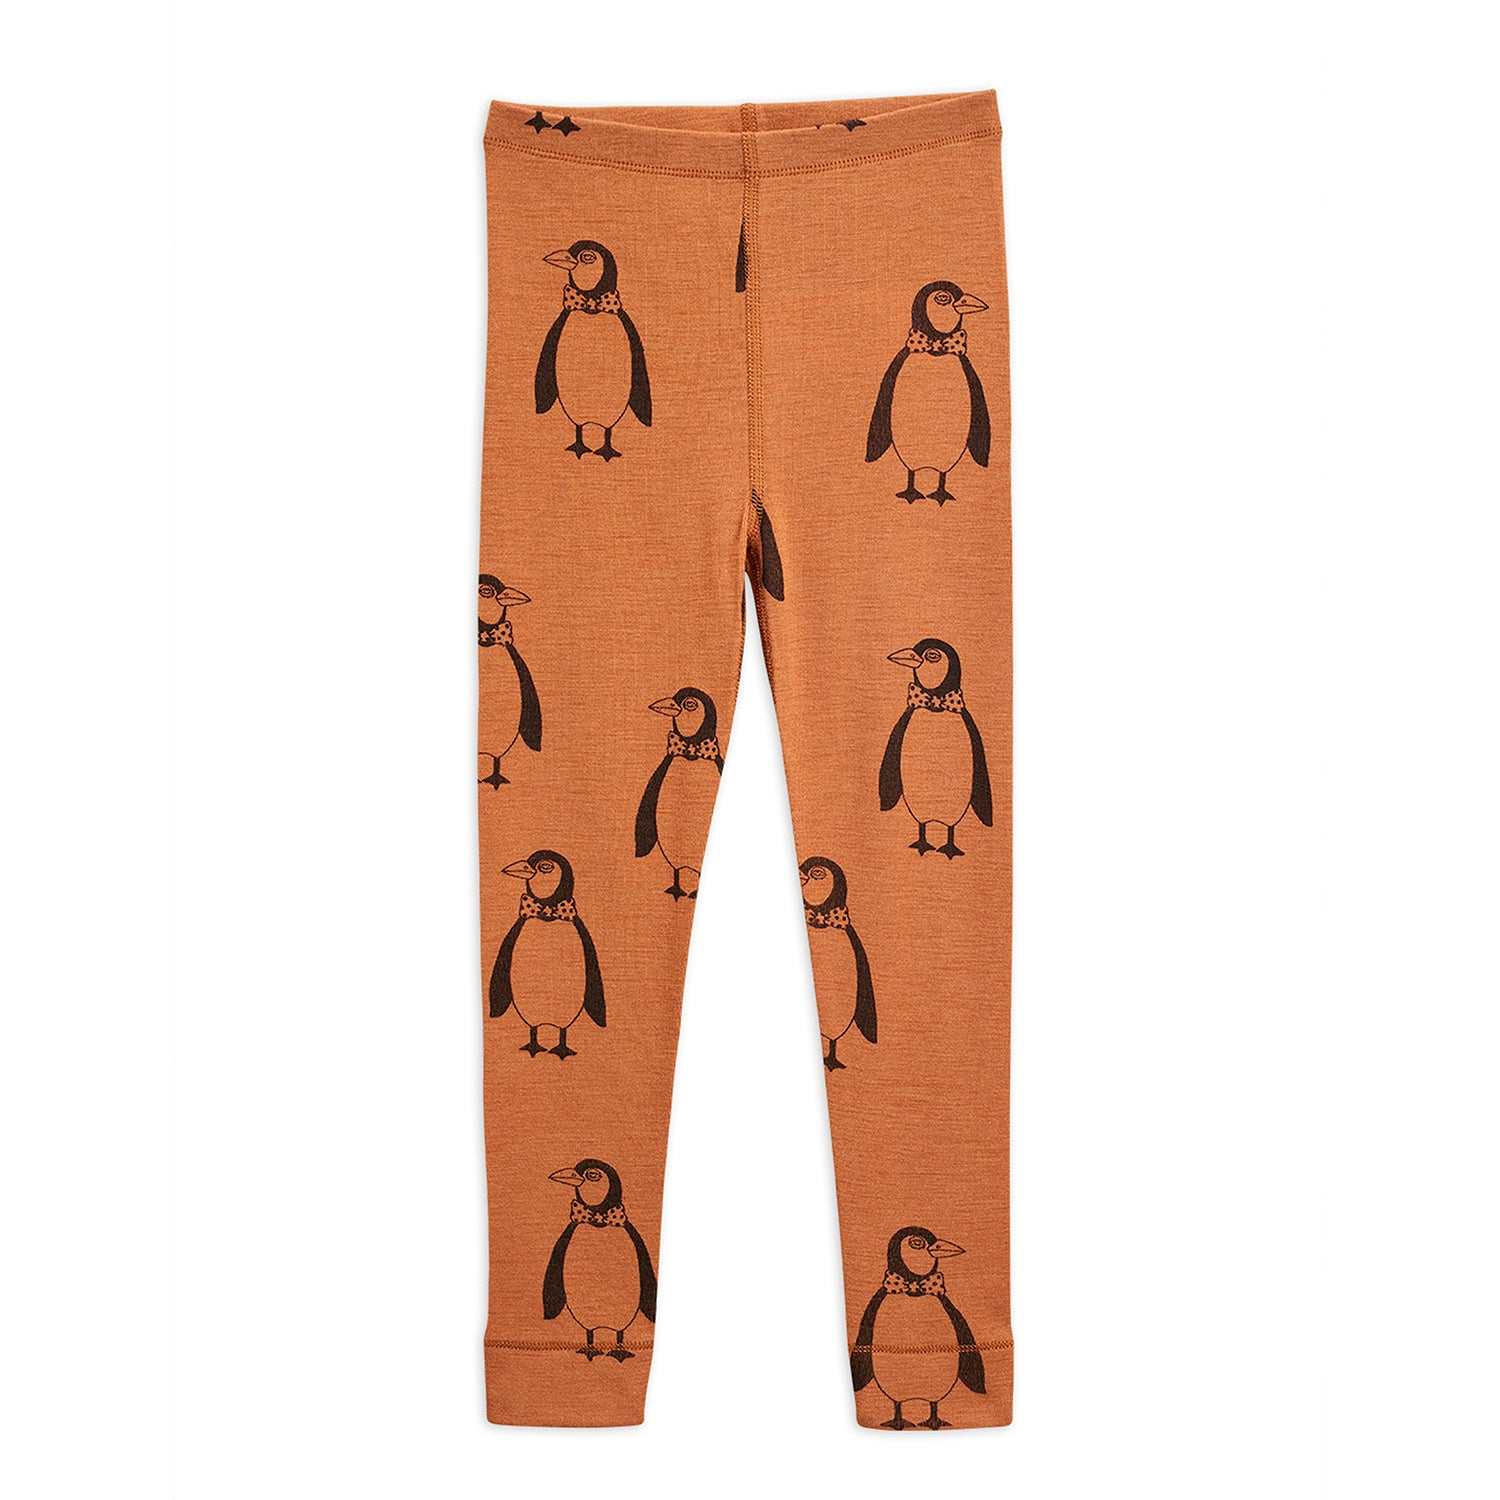 Mini Rodini penguin wool leggarit, brown